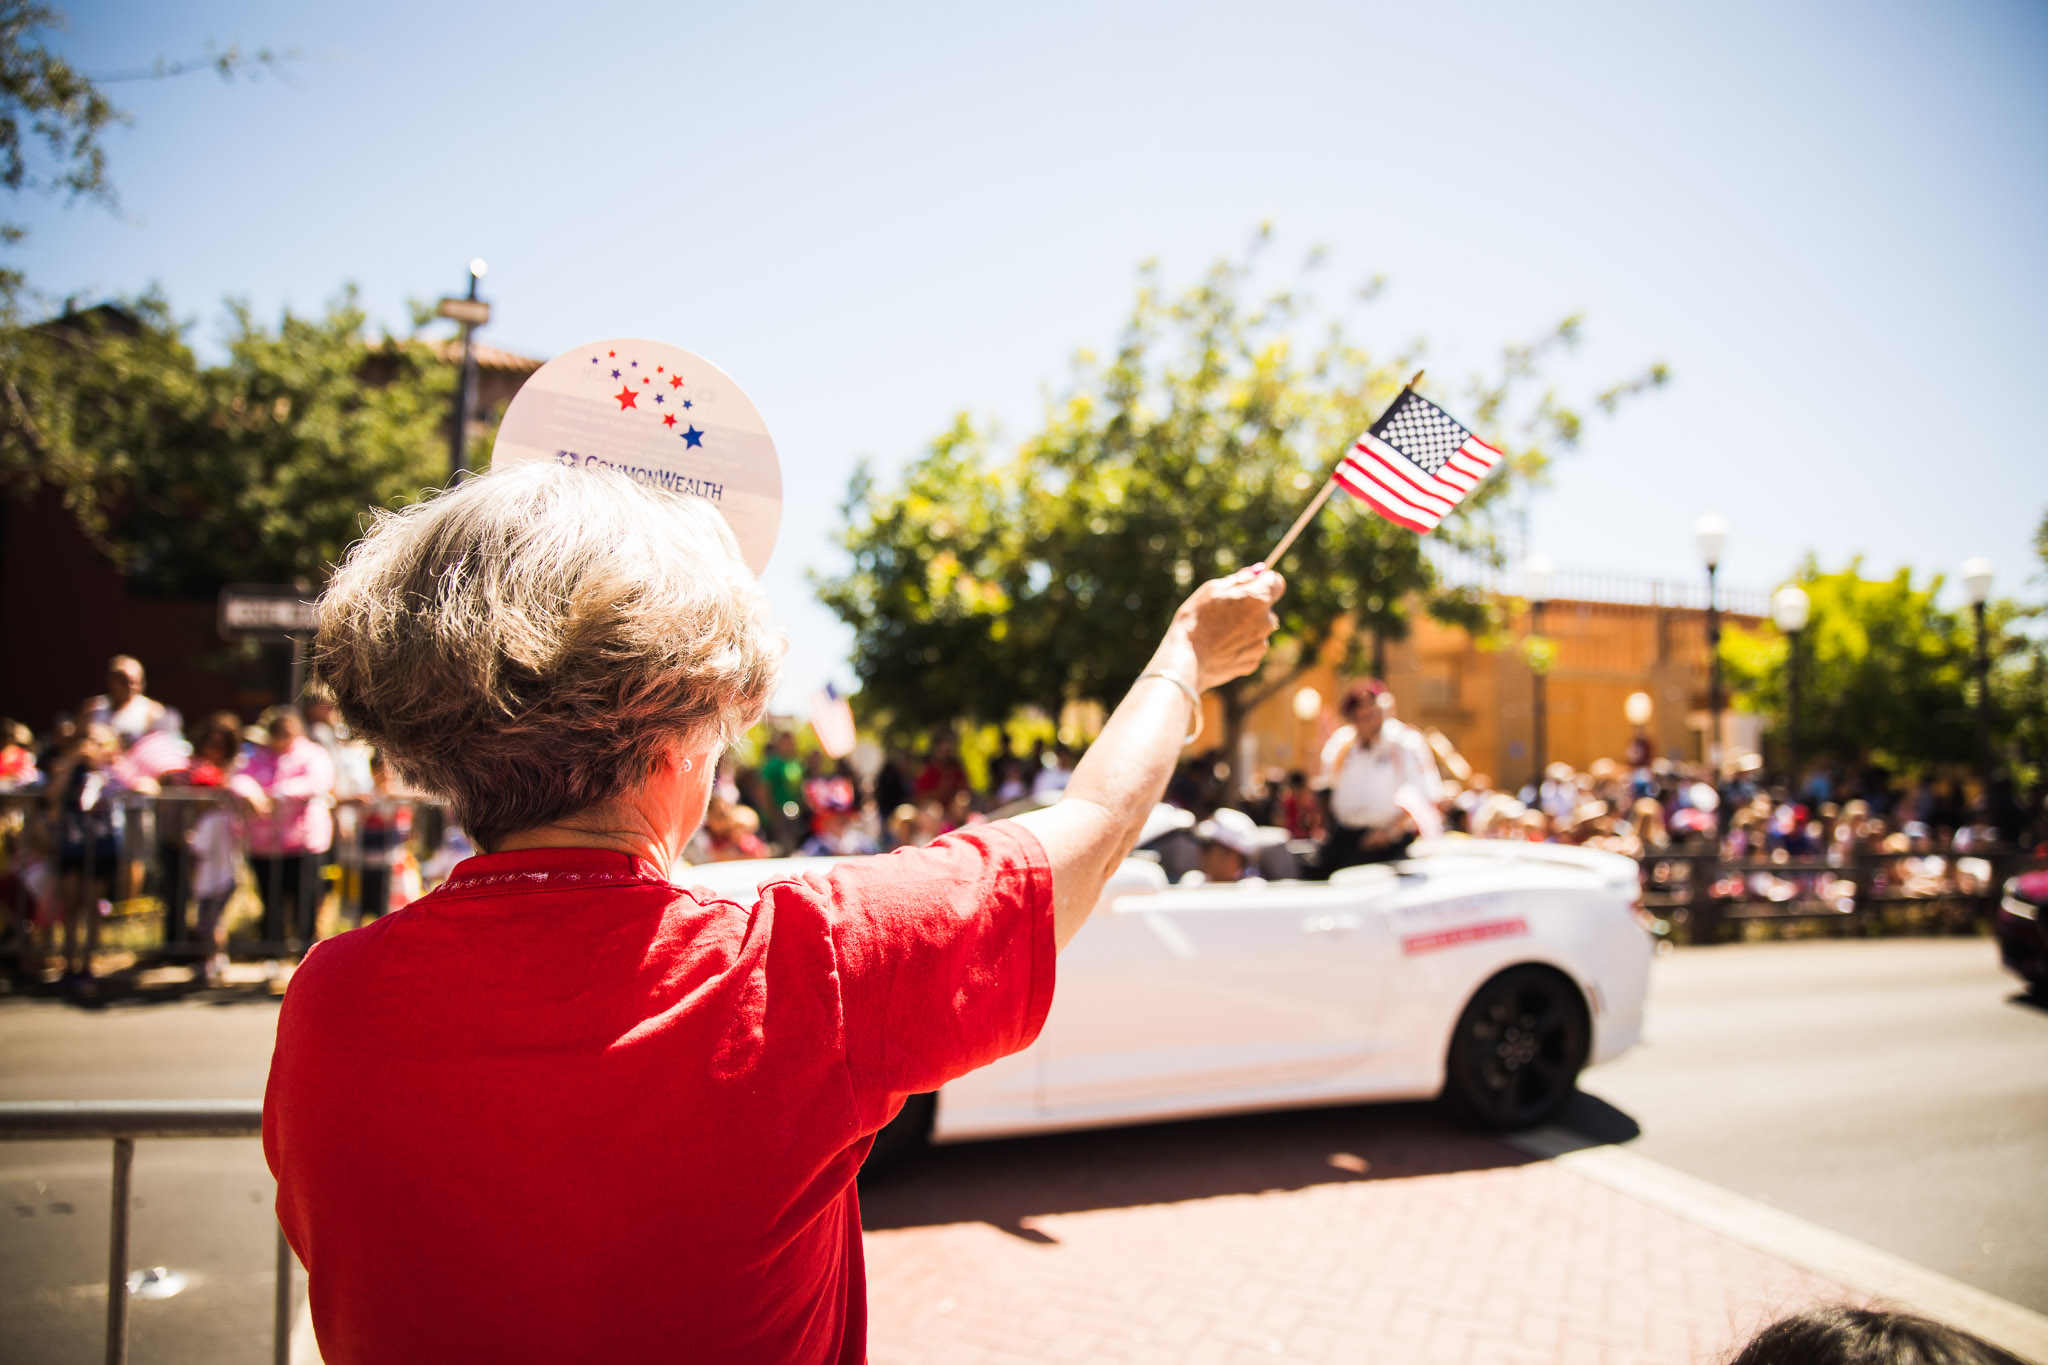 Archer_Inspired_Photography_Morgan_Hill_California_4th_of_july_parade-121.jpg